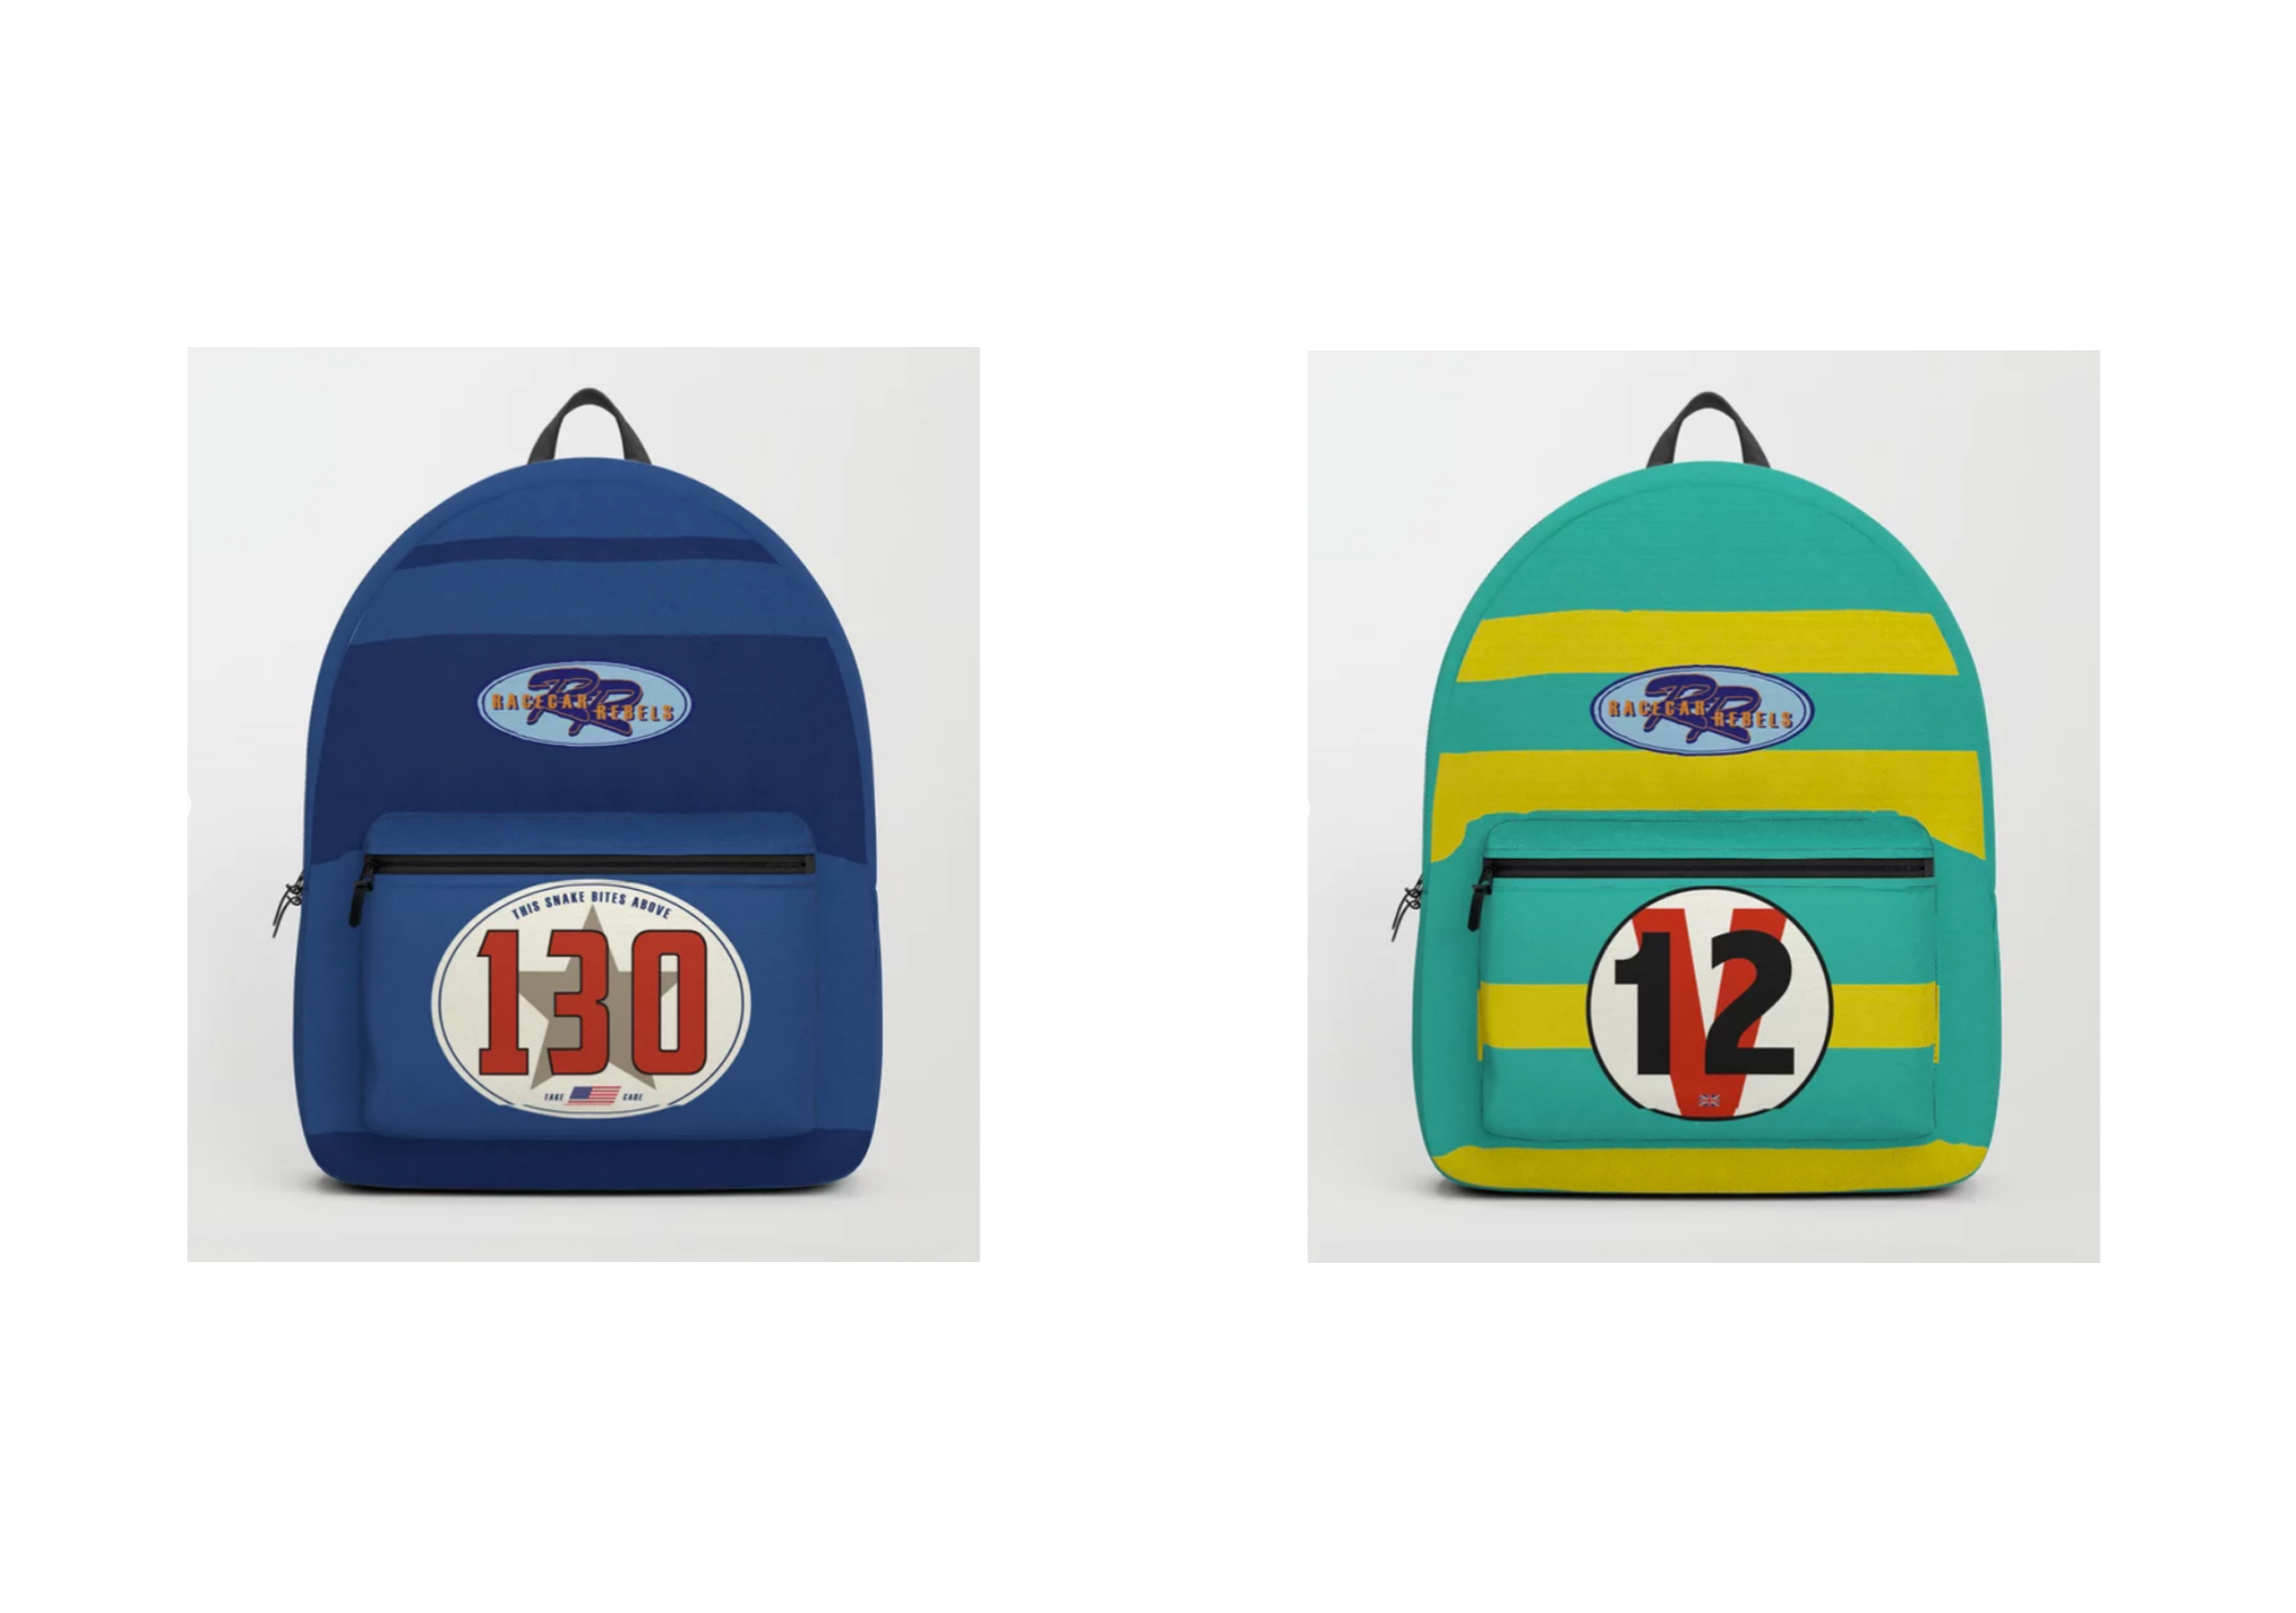 Racecar Rebels Backpacks